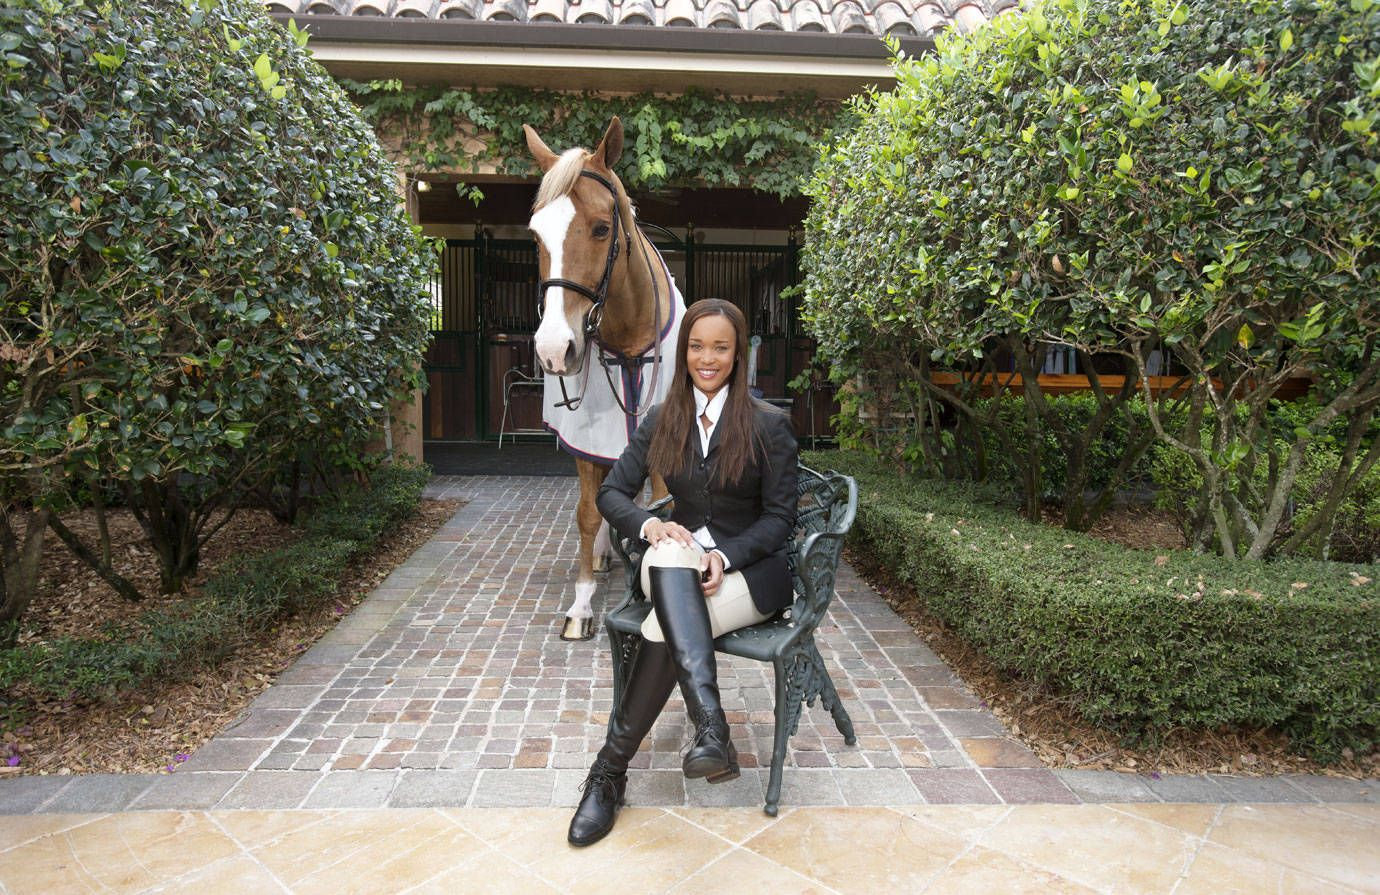 Age: 26. Riding Since: 1992. Primary Horse: Chiron S, a 14-year-old Holsteiner. Stables: Salamander Farm, Wellington, FL (20 stalls, 10 acres), and the Plains, VA (30 stalls, 200 acres). Parents: Her mother, Sheila, co-founded Black Entertainment Television with her husband, Robert L. Johnson, and is CEO of Salamander Hospitality; the divorced couple's combined worth is close to a billion dollars.   - TownandCountryMag.com